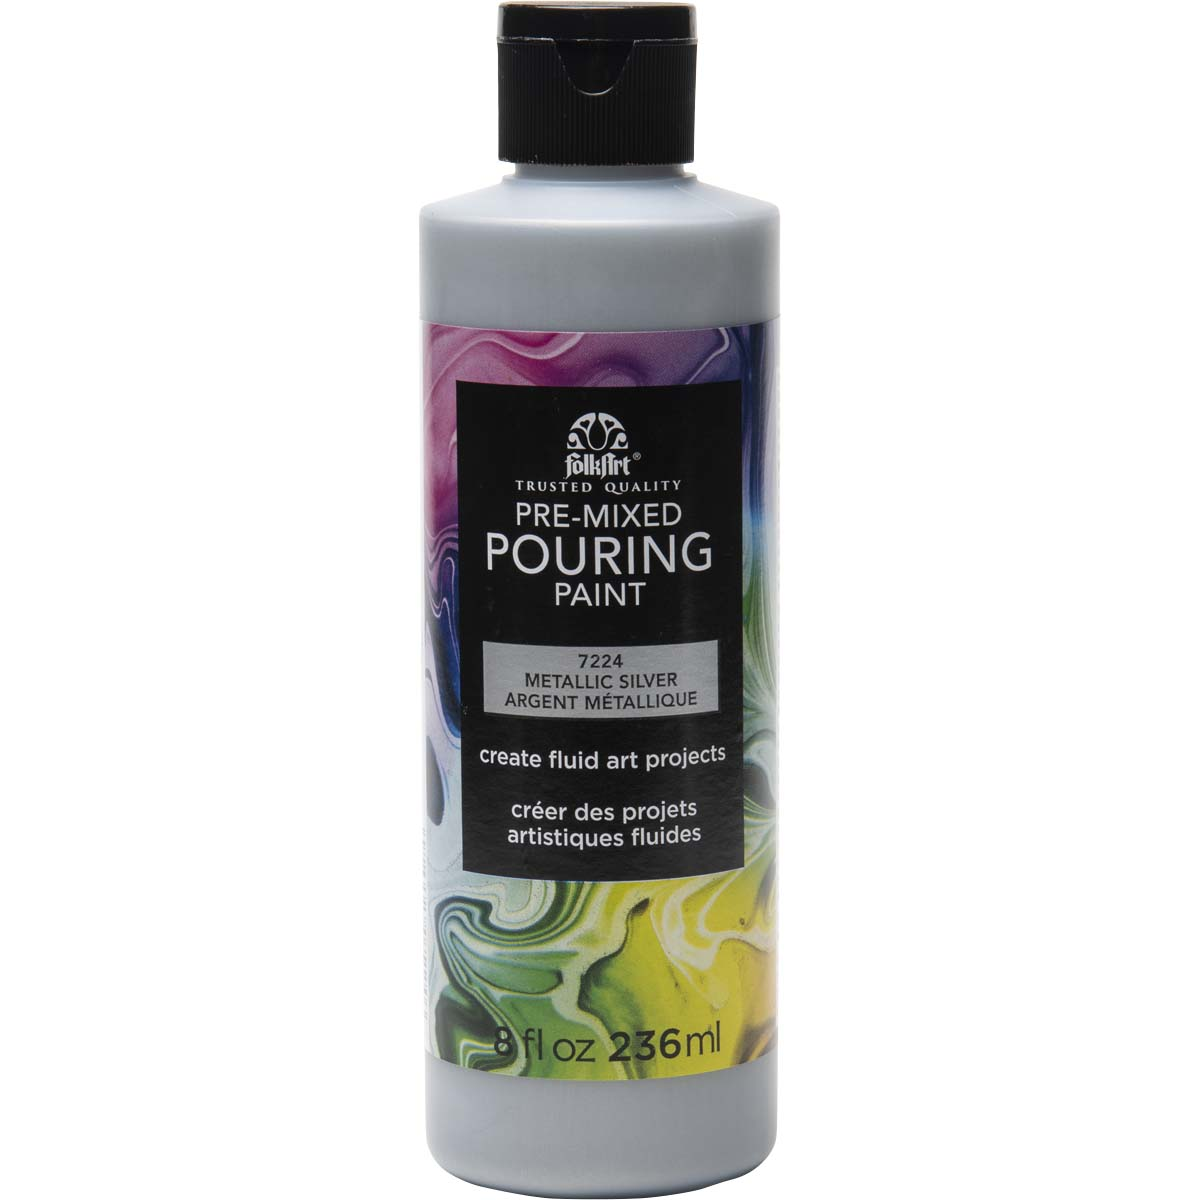 FolkArt ® Pre-mixed Pouring Paint - Metallic Silver, 8 oz. - 7224